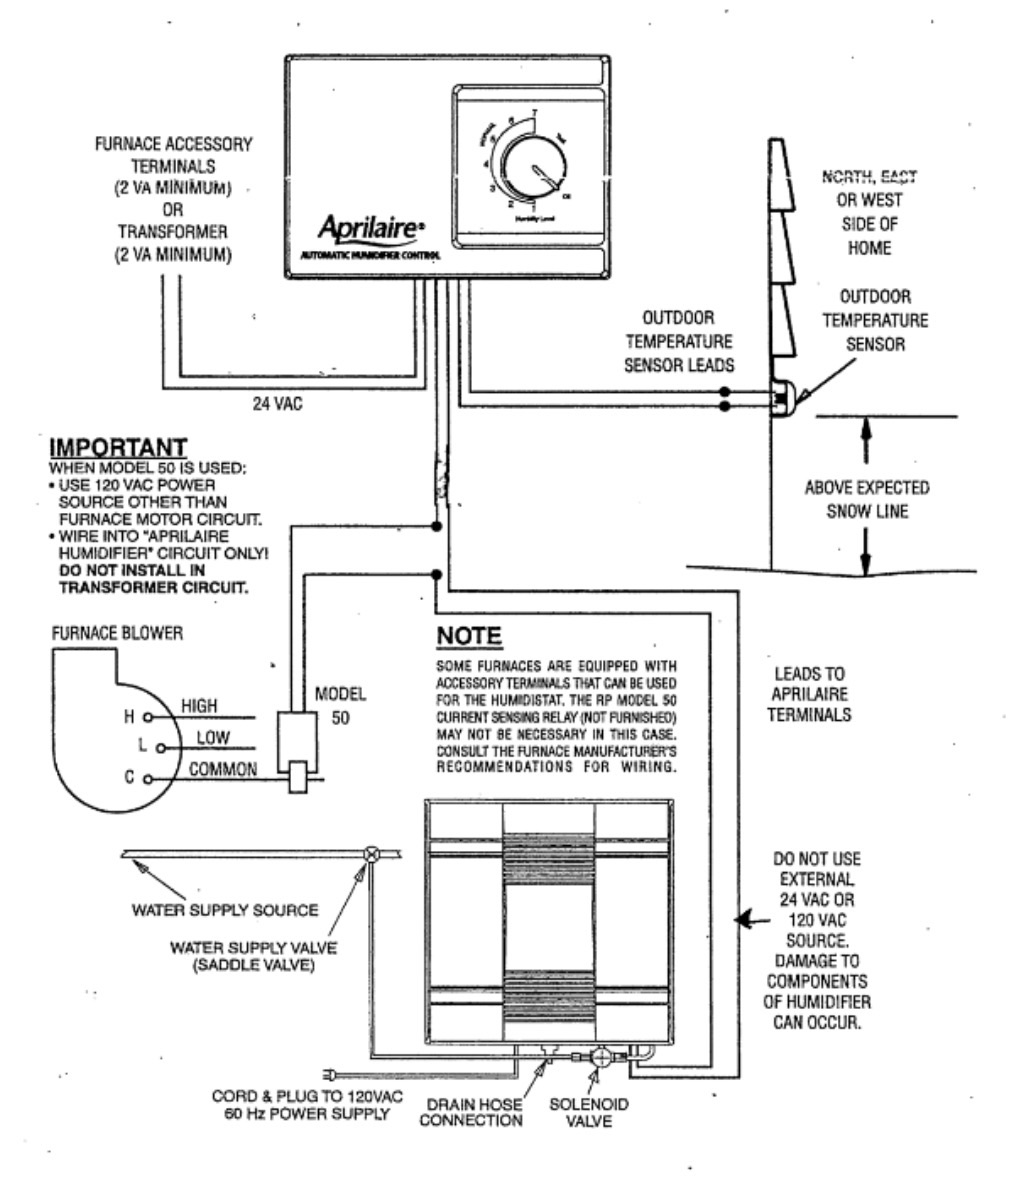 Humidistat Fan Wiring Diagram on manrose extractor fans, vent-axia extractor fans, direct drive wall exhaust fans, panasonic extractor fans,